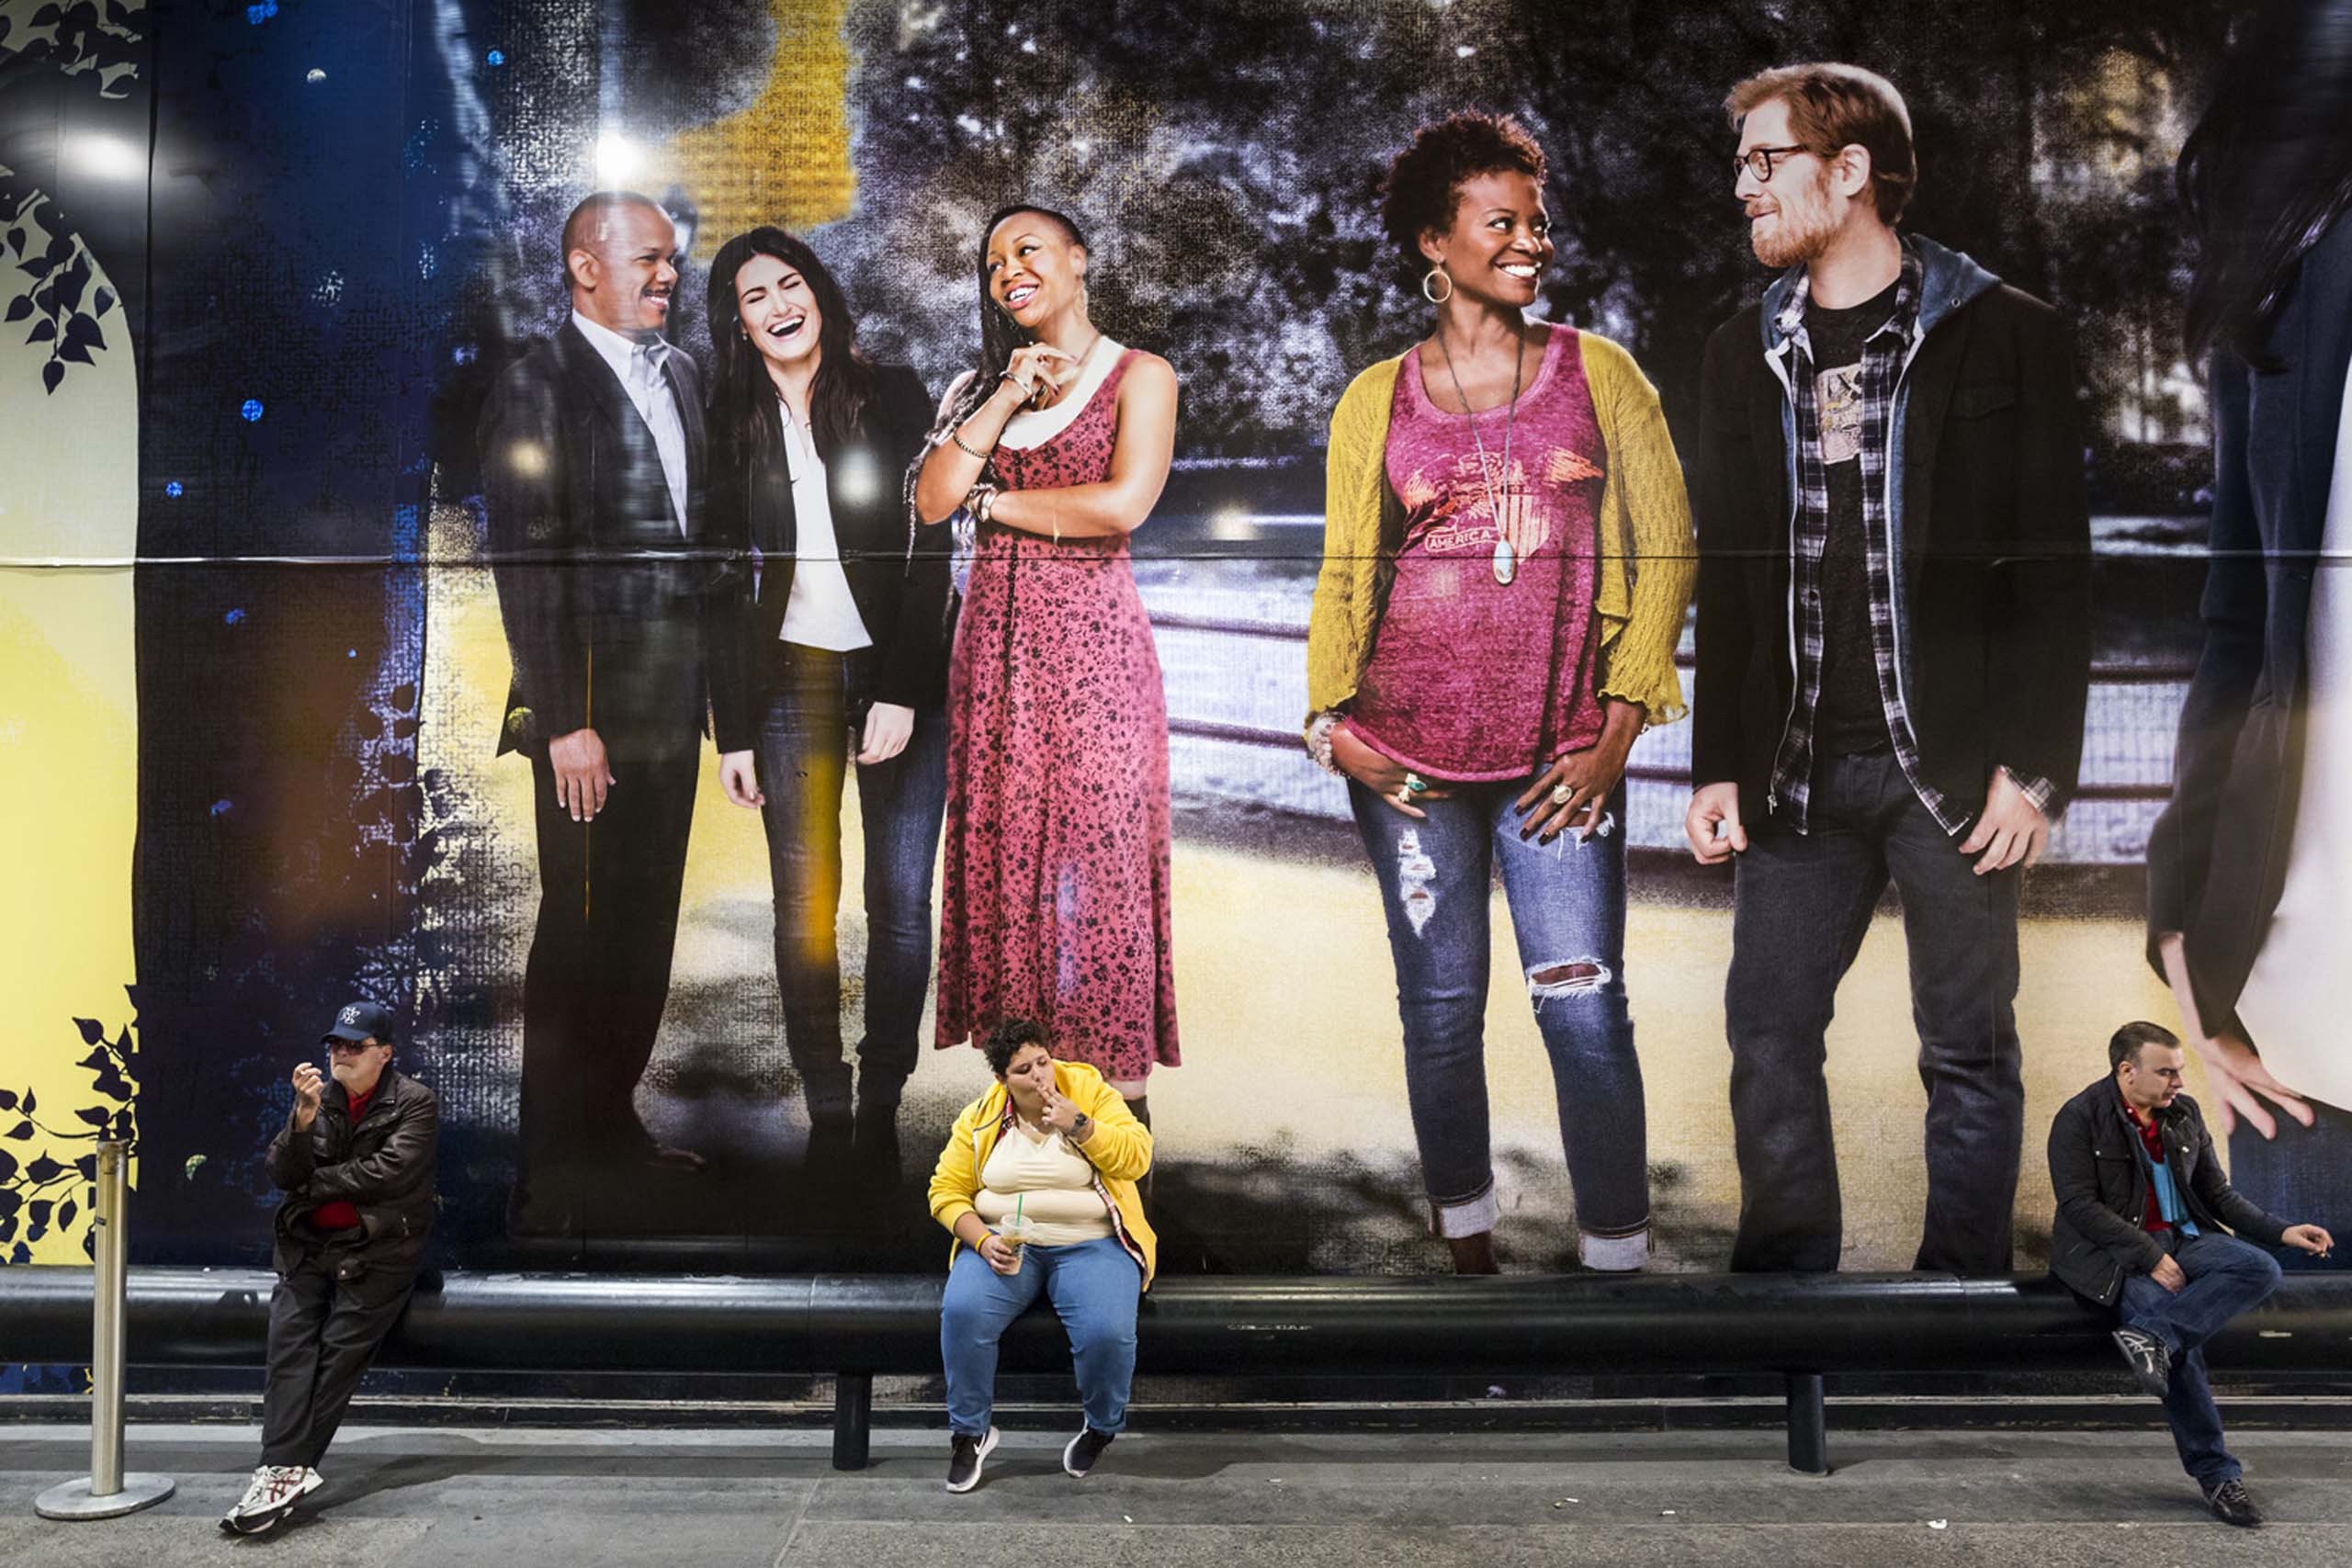 Apr 22, 2014 - New York, New York, United States: Three people smoking under a billboard promoting the Broadway show Once around Times Square. (Natan Dvir / Polaris Images)